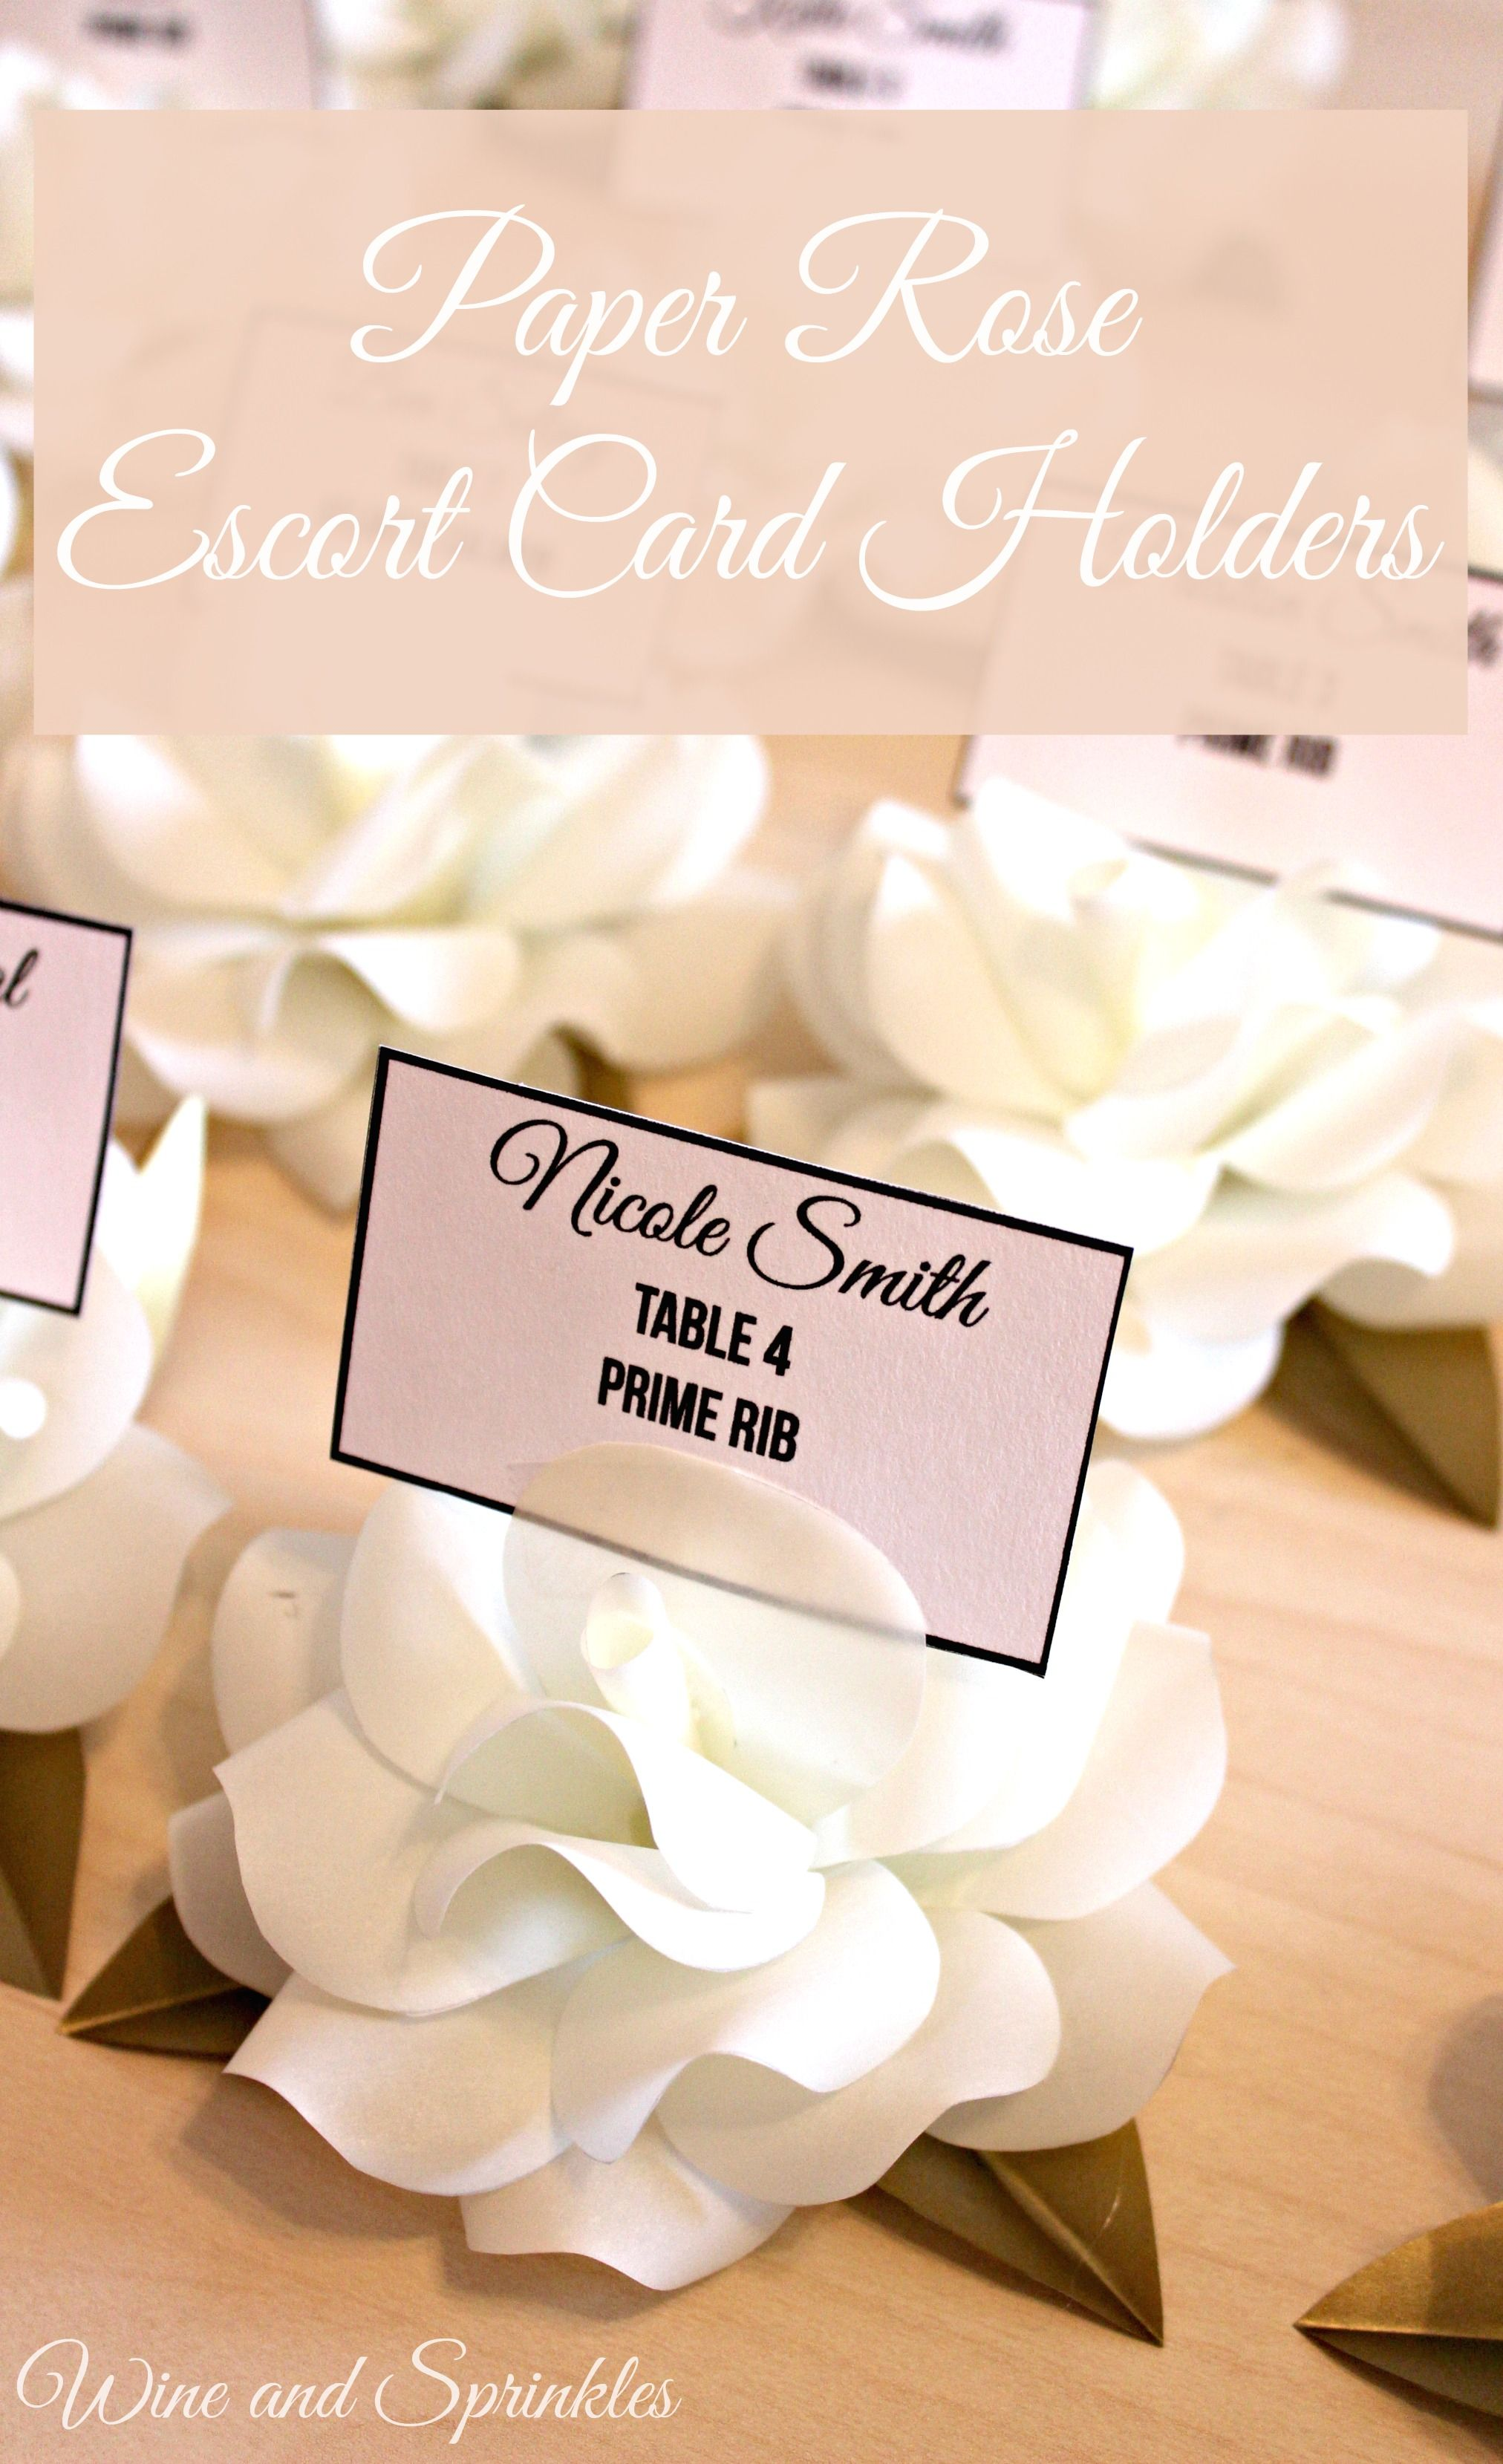 Vellum Paper Rose Escort Card Holders Place Card Floral